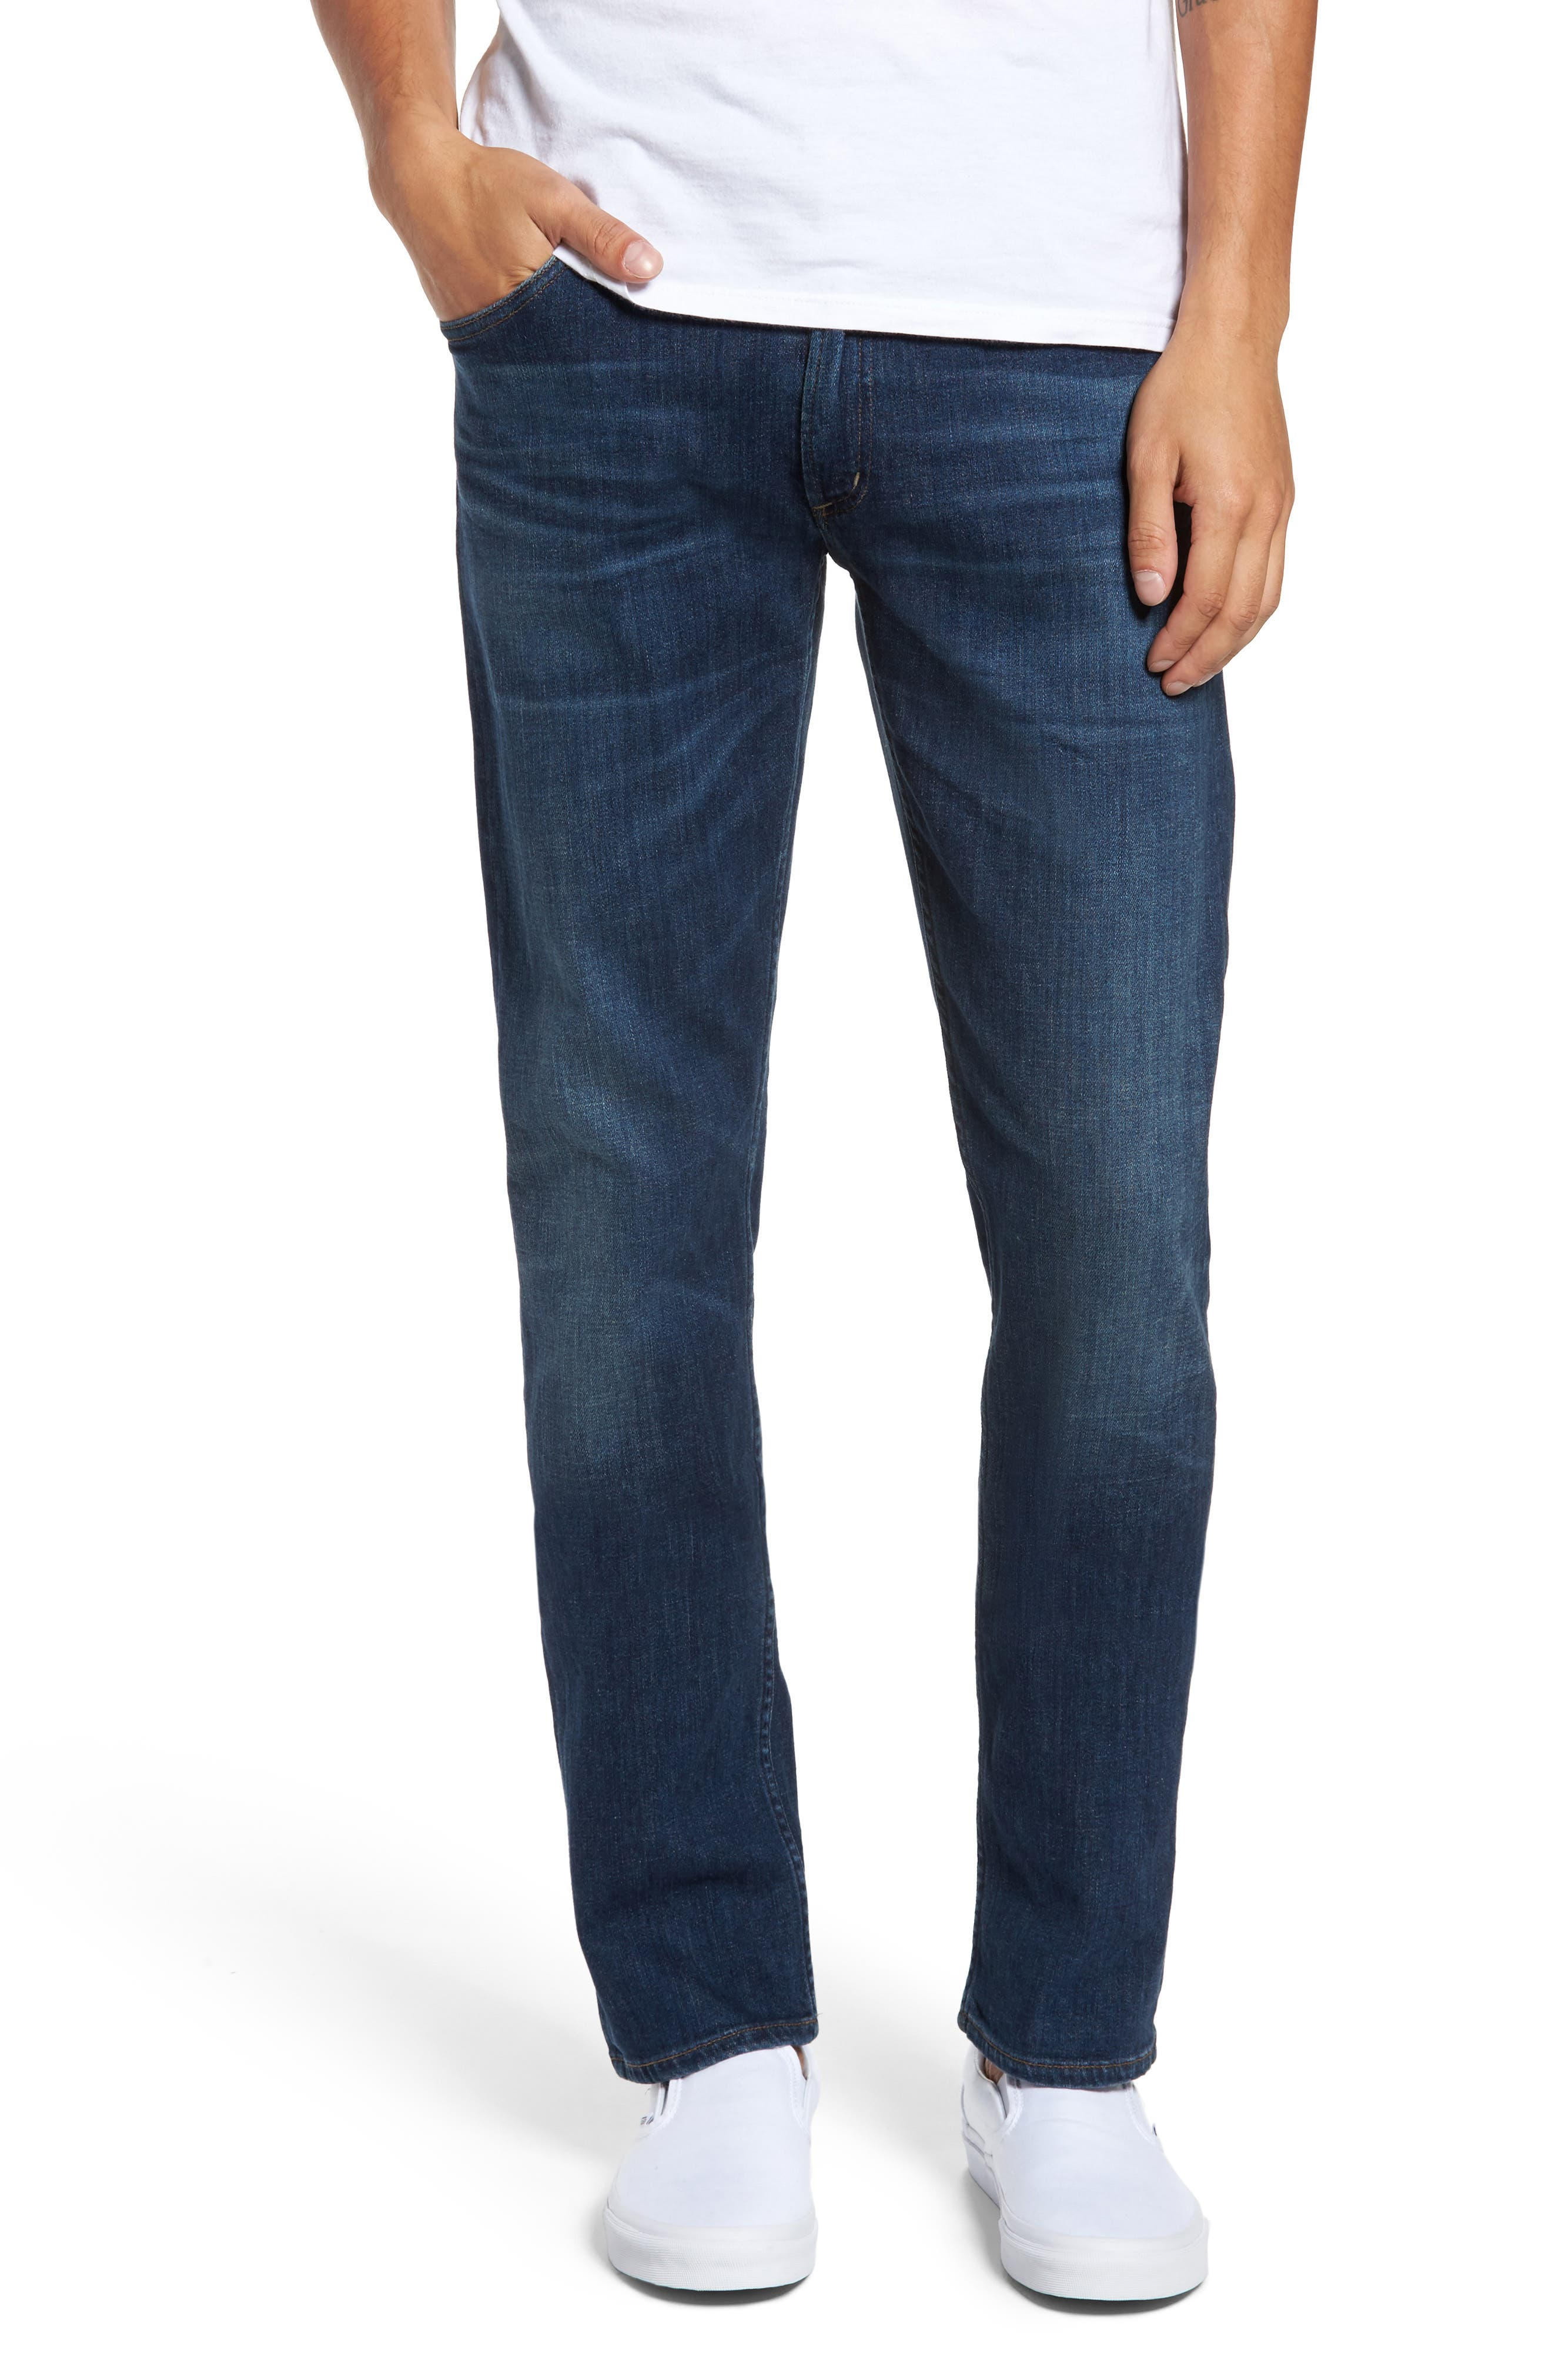 Bowery Slim Fit Jeans,                         Main,                         color, Eastgate